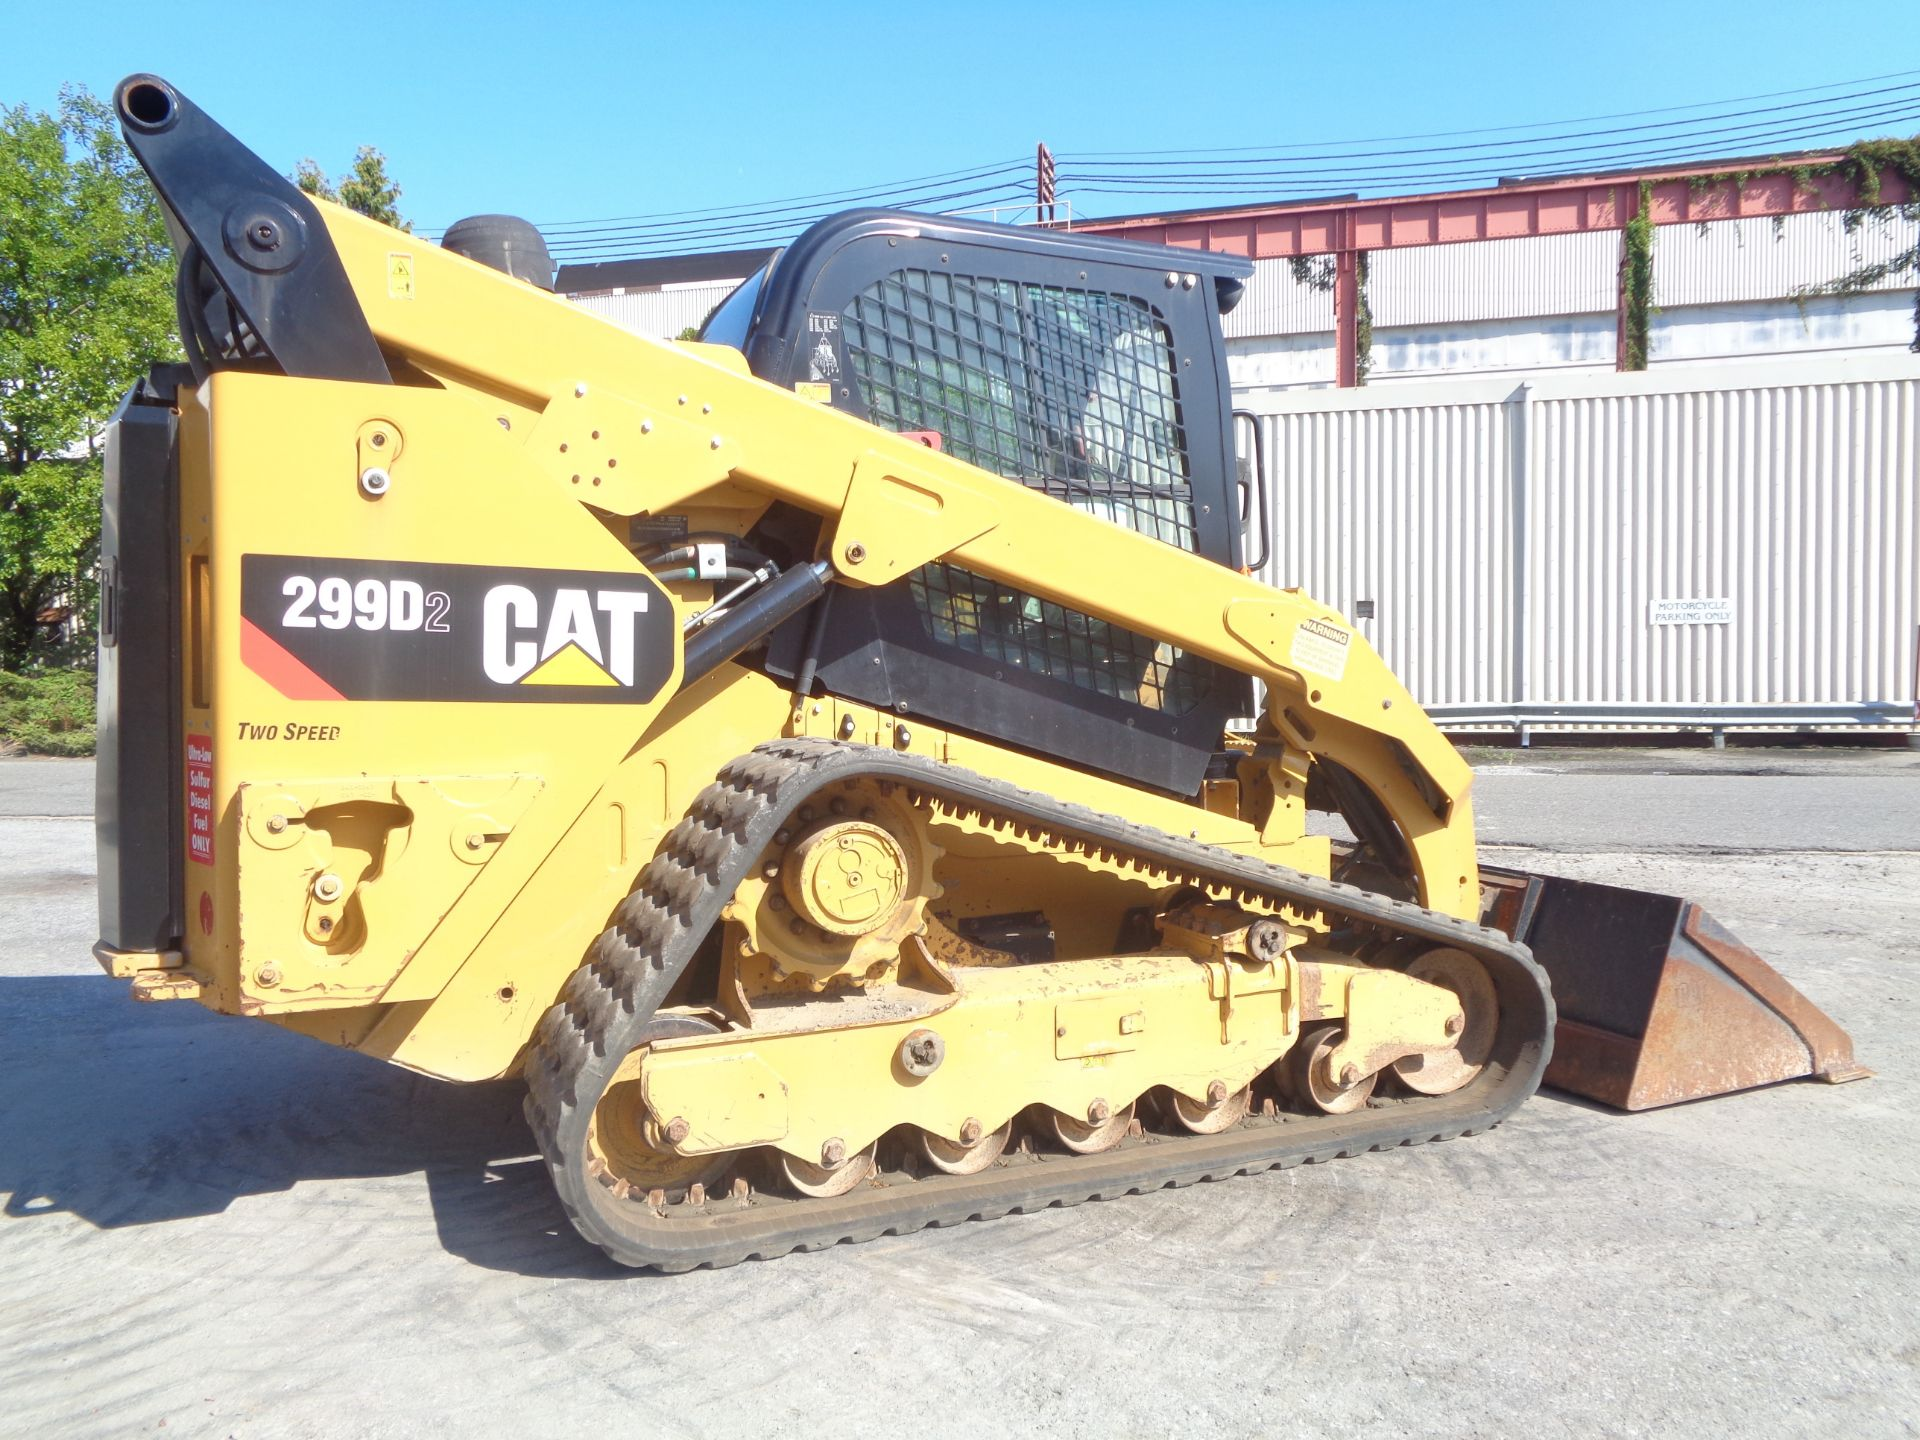 Lot 39 - 2016 Caterpillar 299D2 Skid Steer